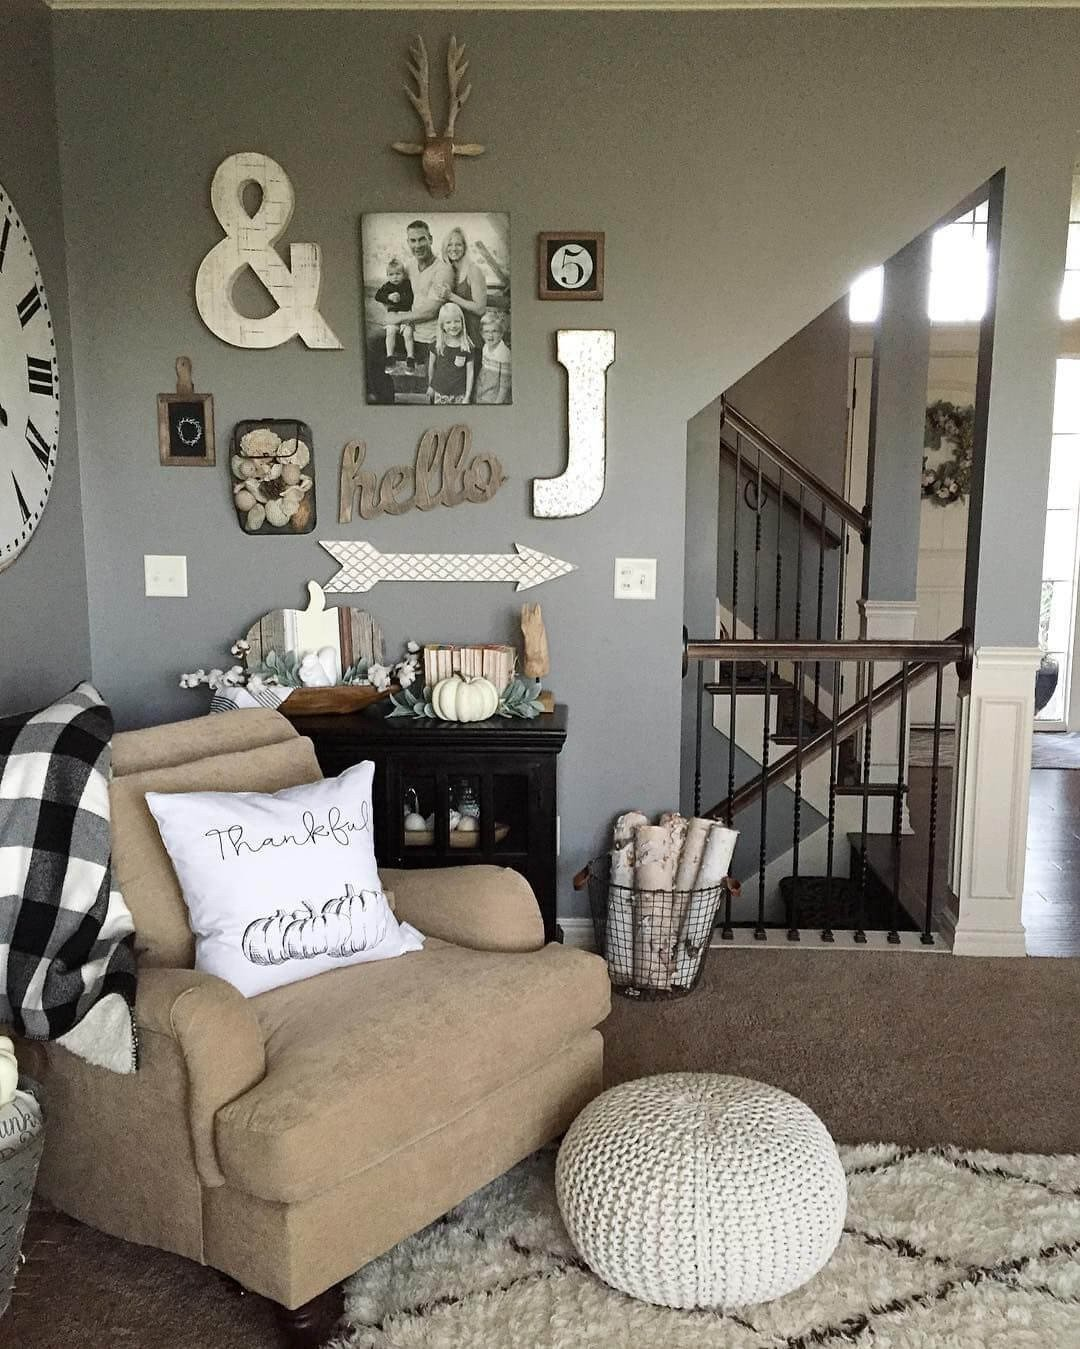 Wall Decor for Living Room 33 Best Rustic Living Room Wall Decor Ideas and Designs